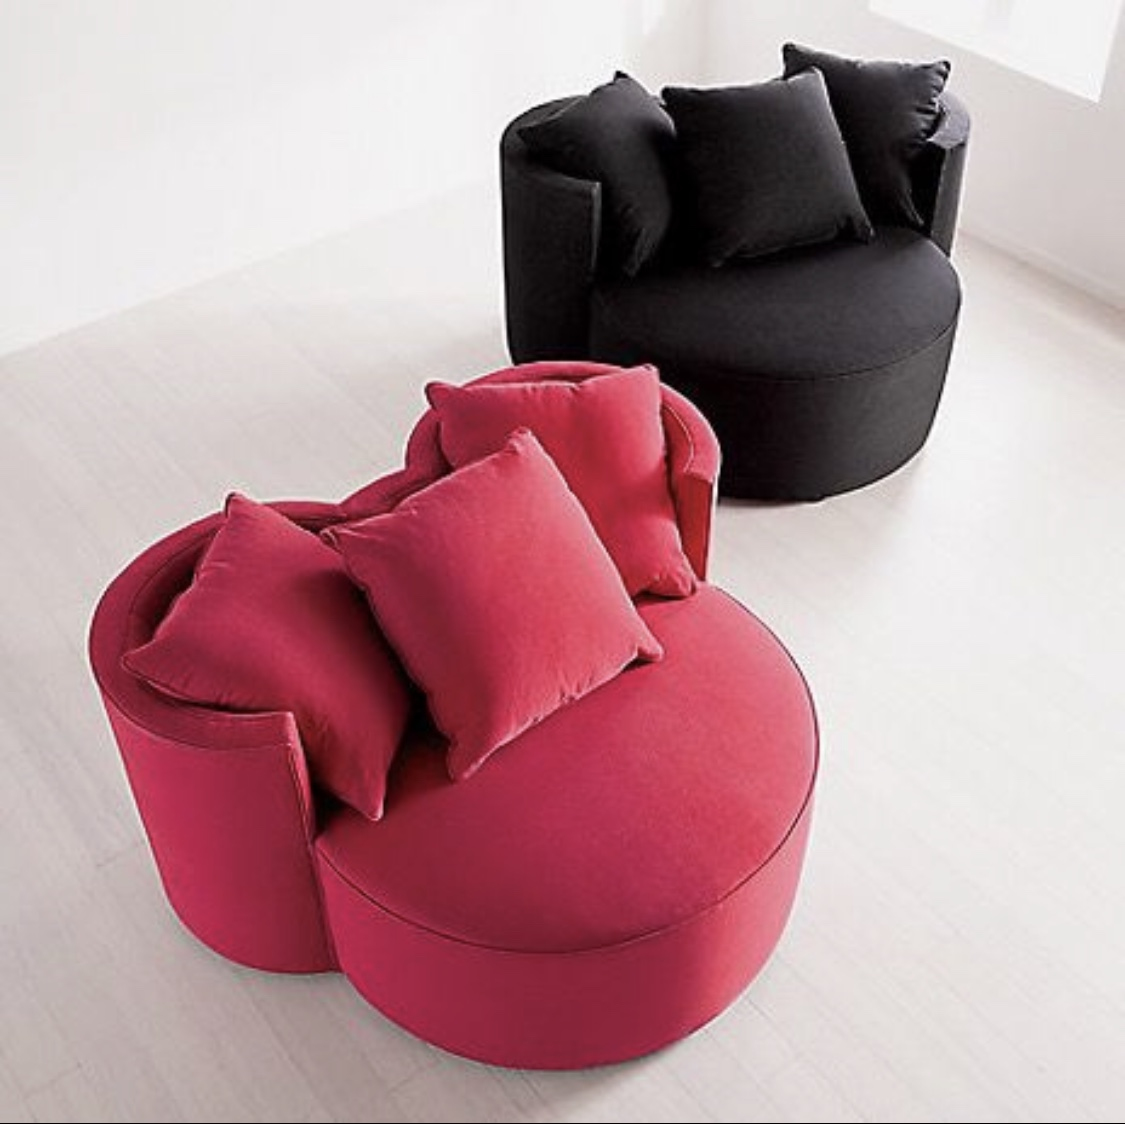 This Mickey Mouse chair is perfect for ANY Disney fan! 1